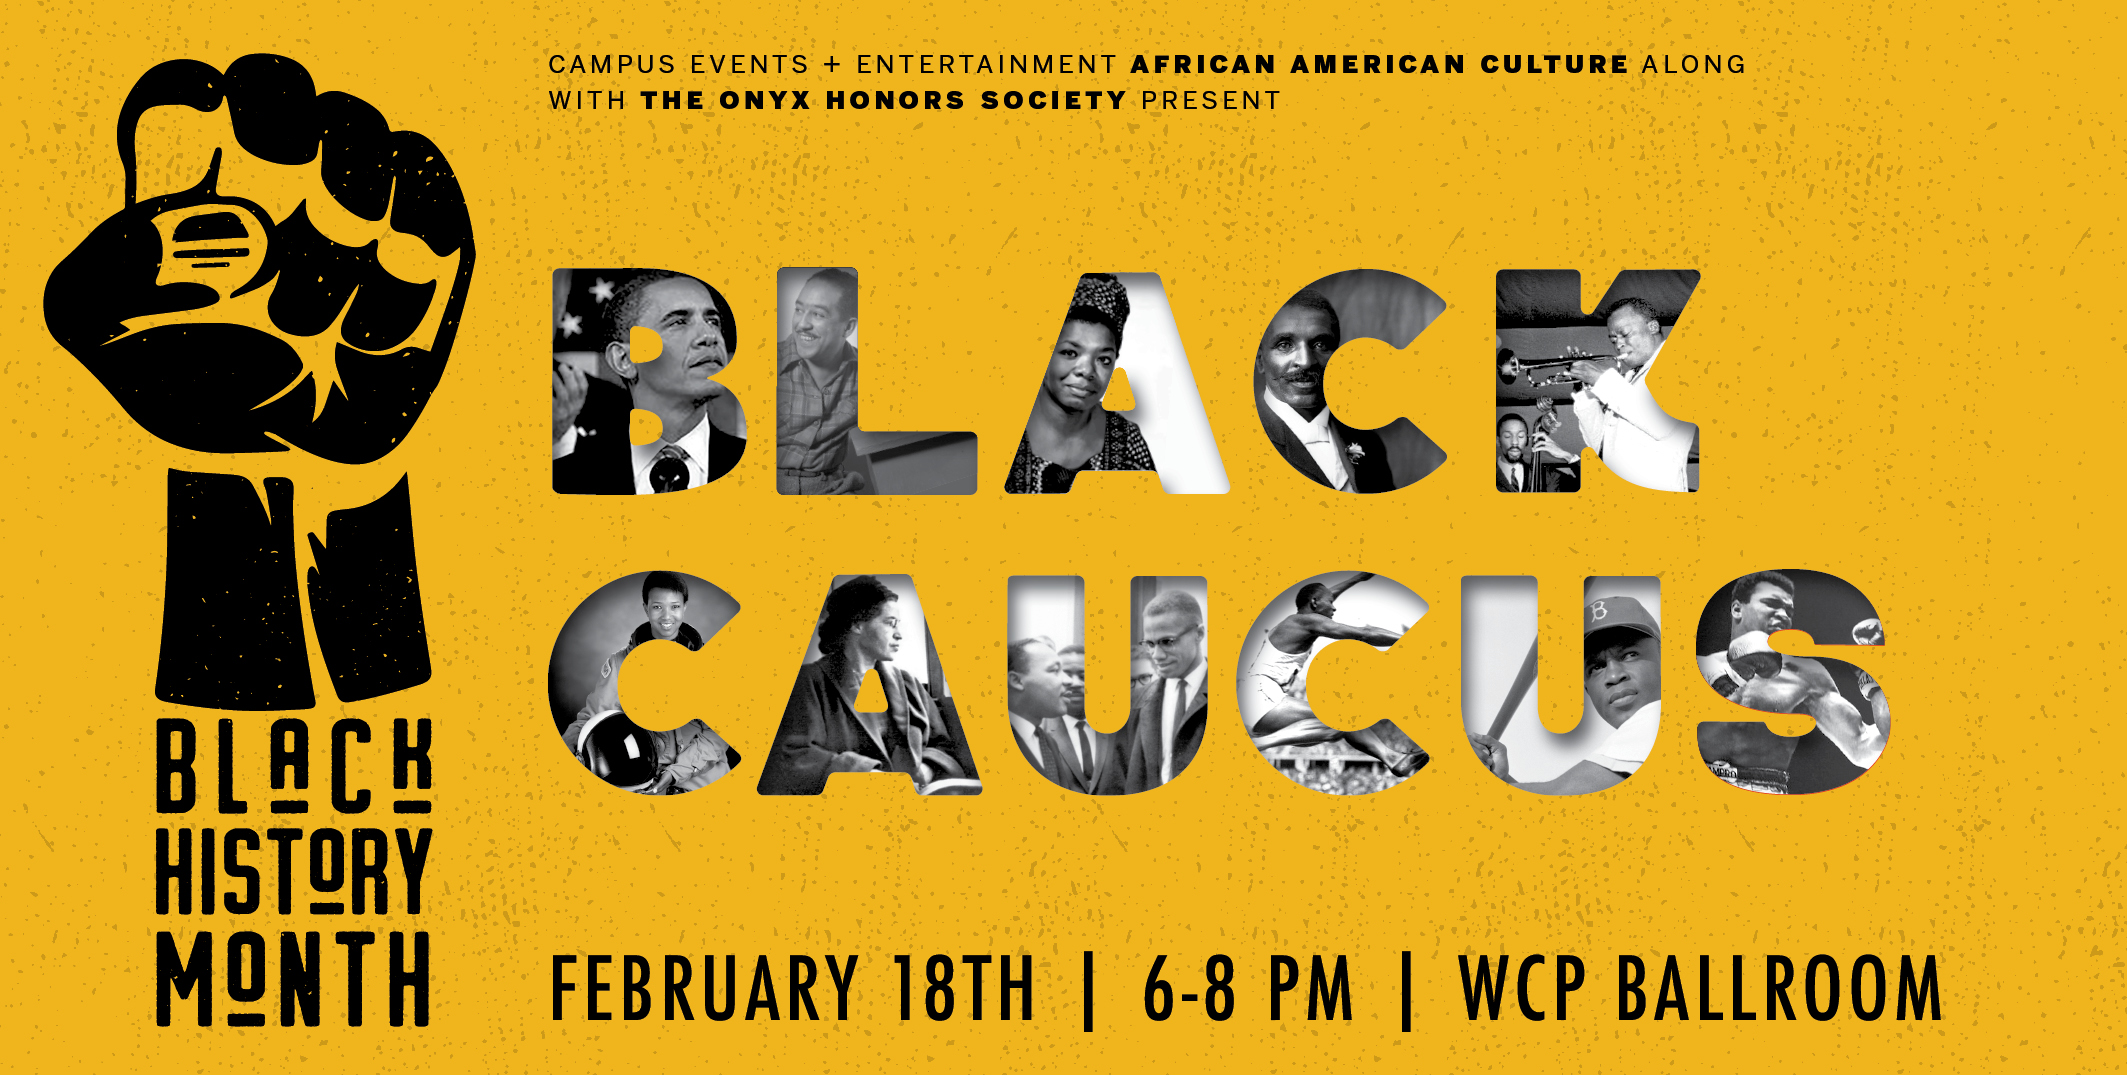 Black Caucus will be on February 18 in the WCP ballroom at 6 pm.